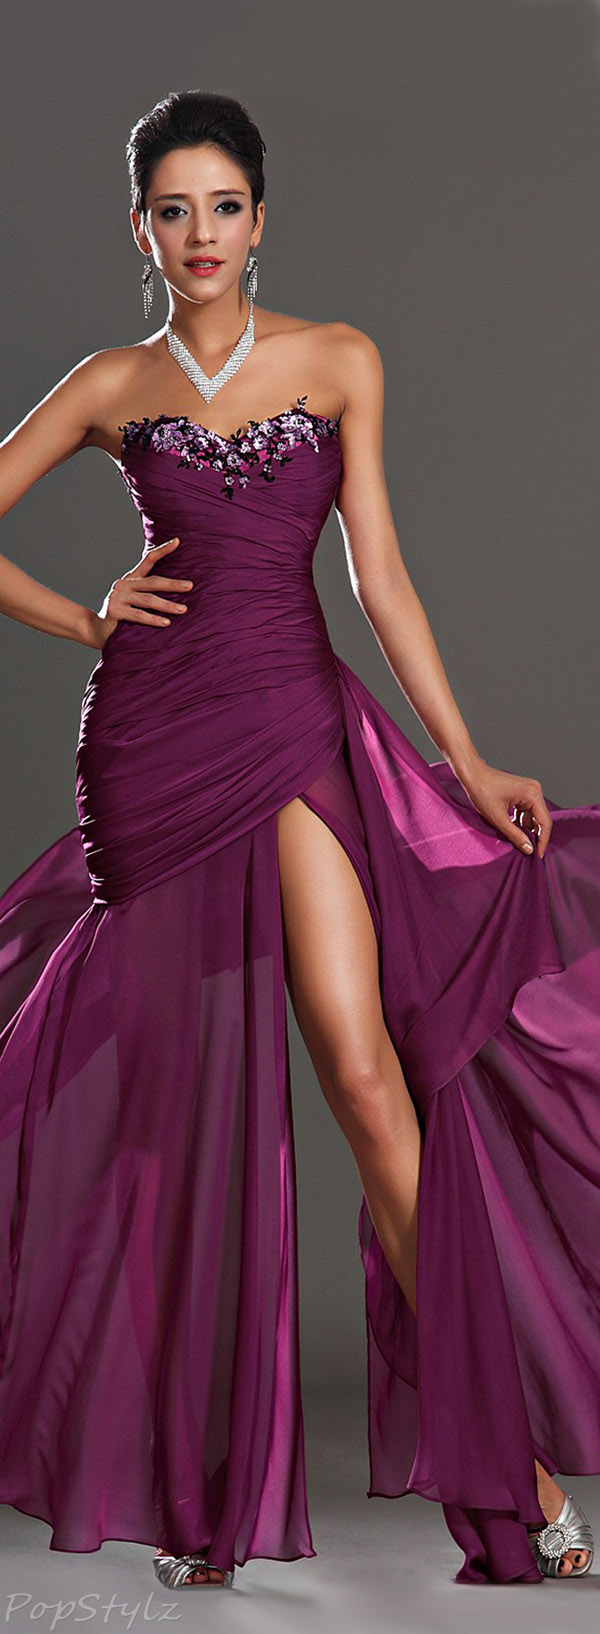 eDressit 00134706 Evening Gown